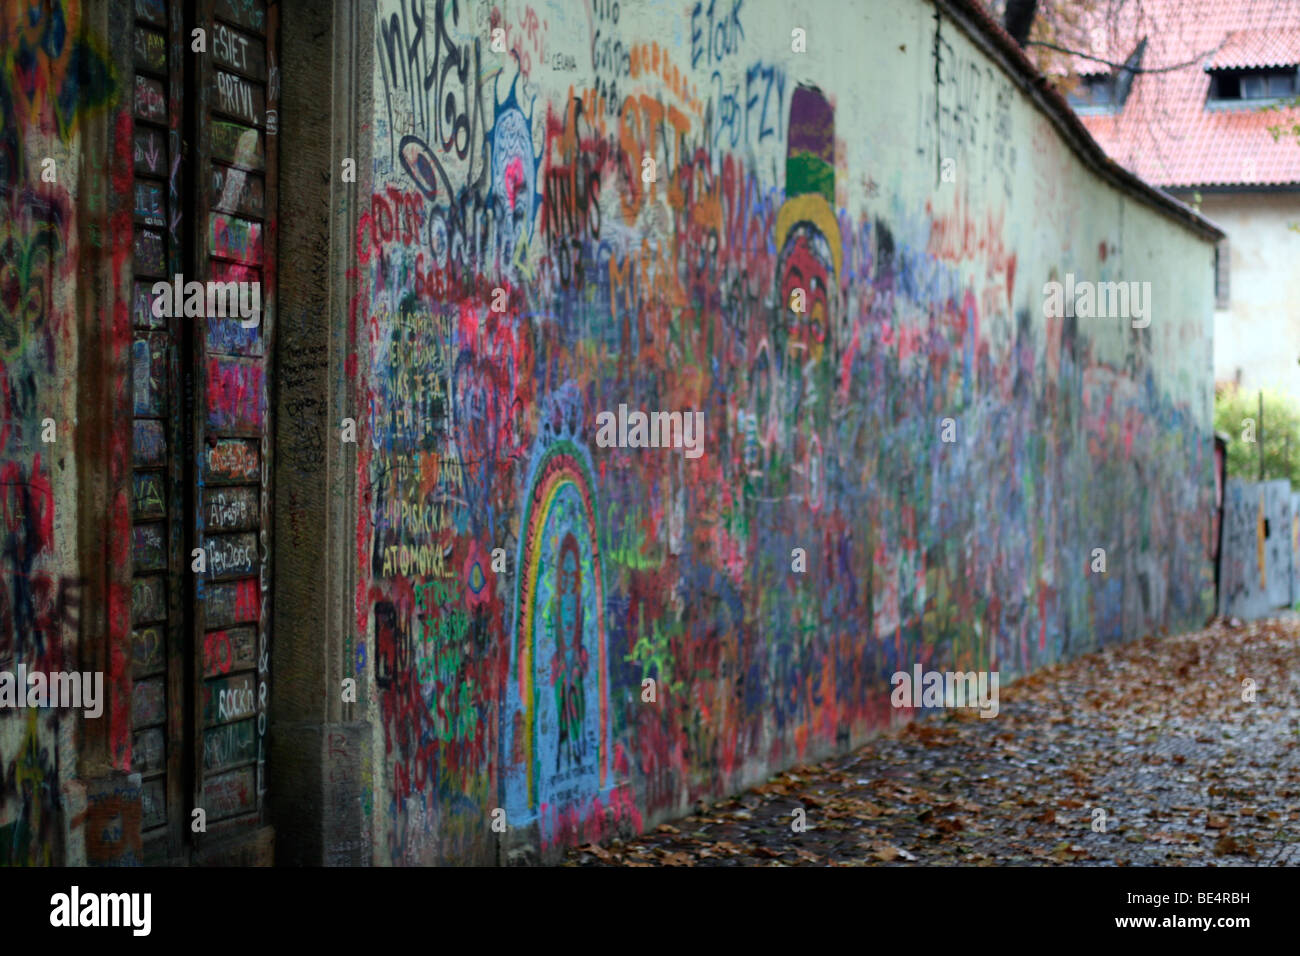 The Colorful Peace Wall in Prague - Stock Image